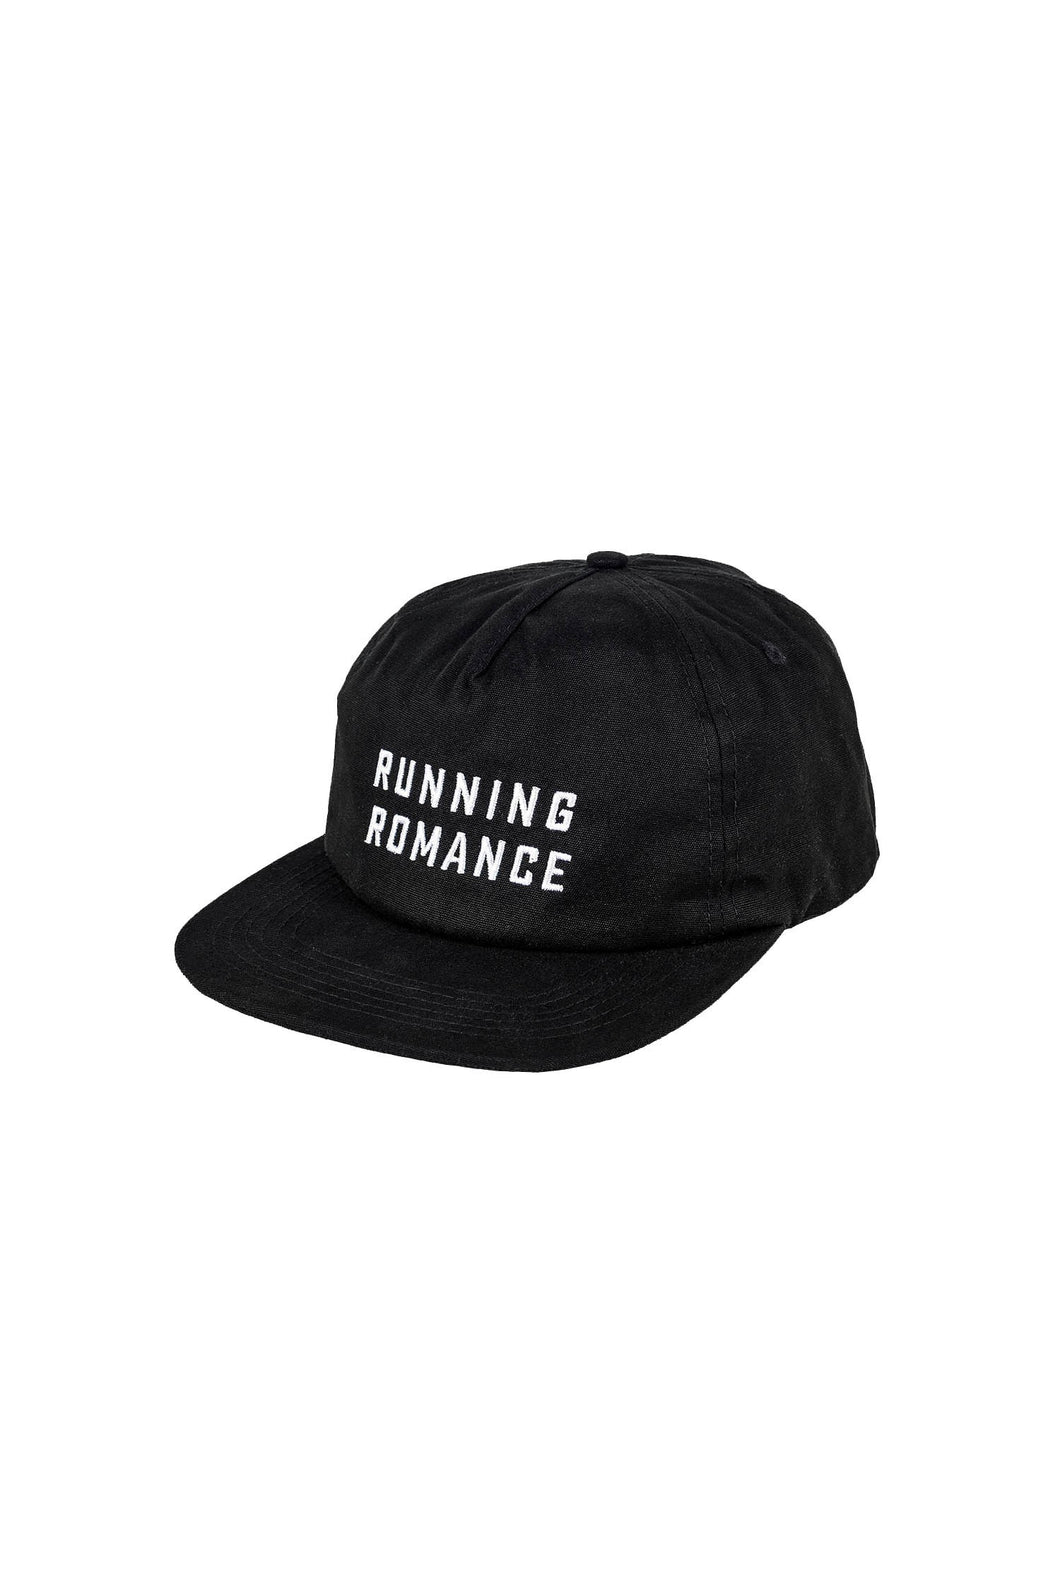 Running Romance Cap - Black